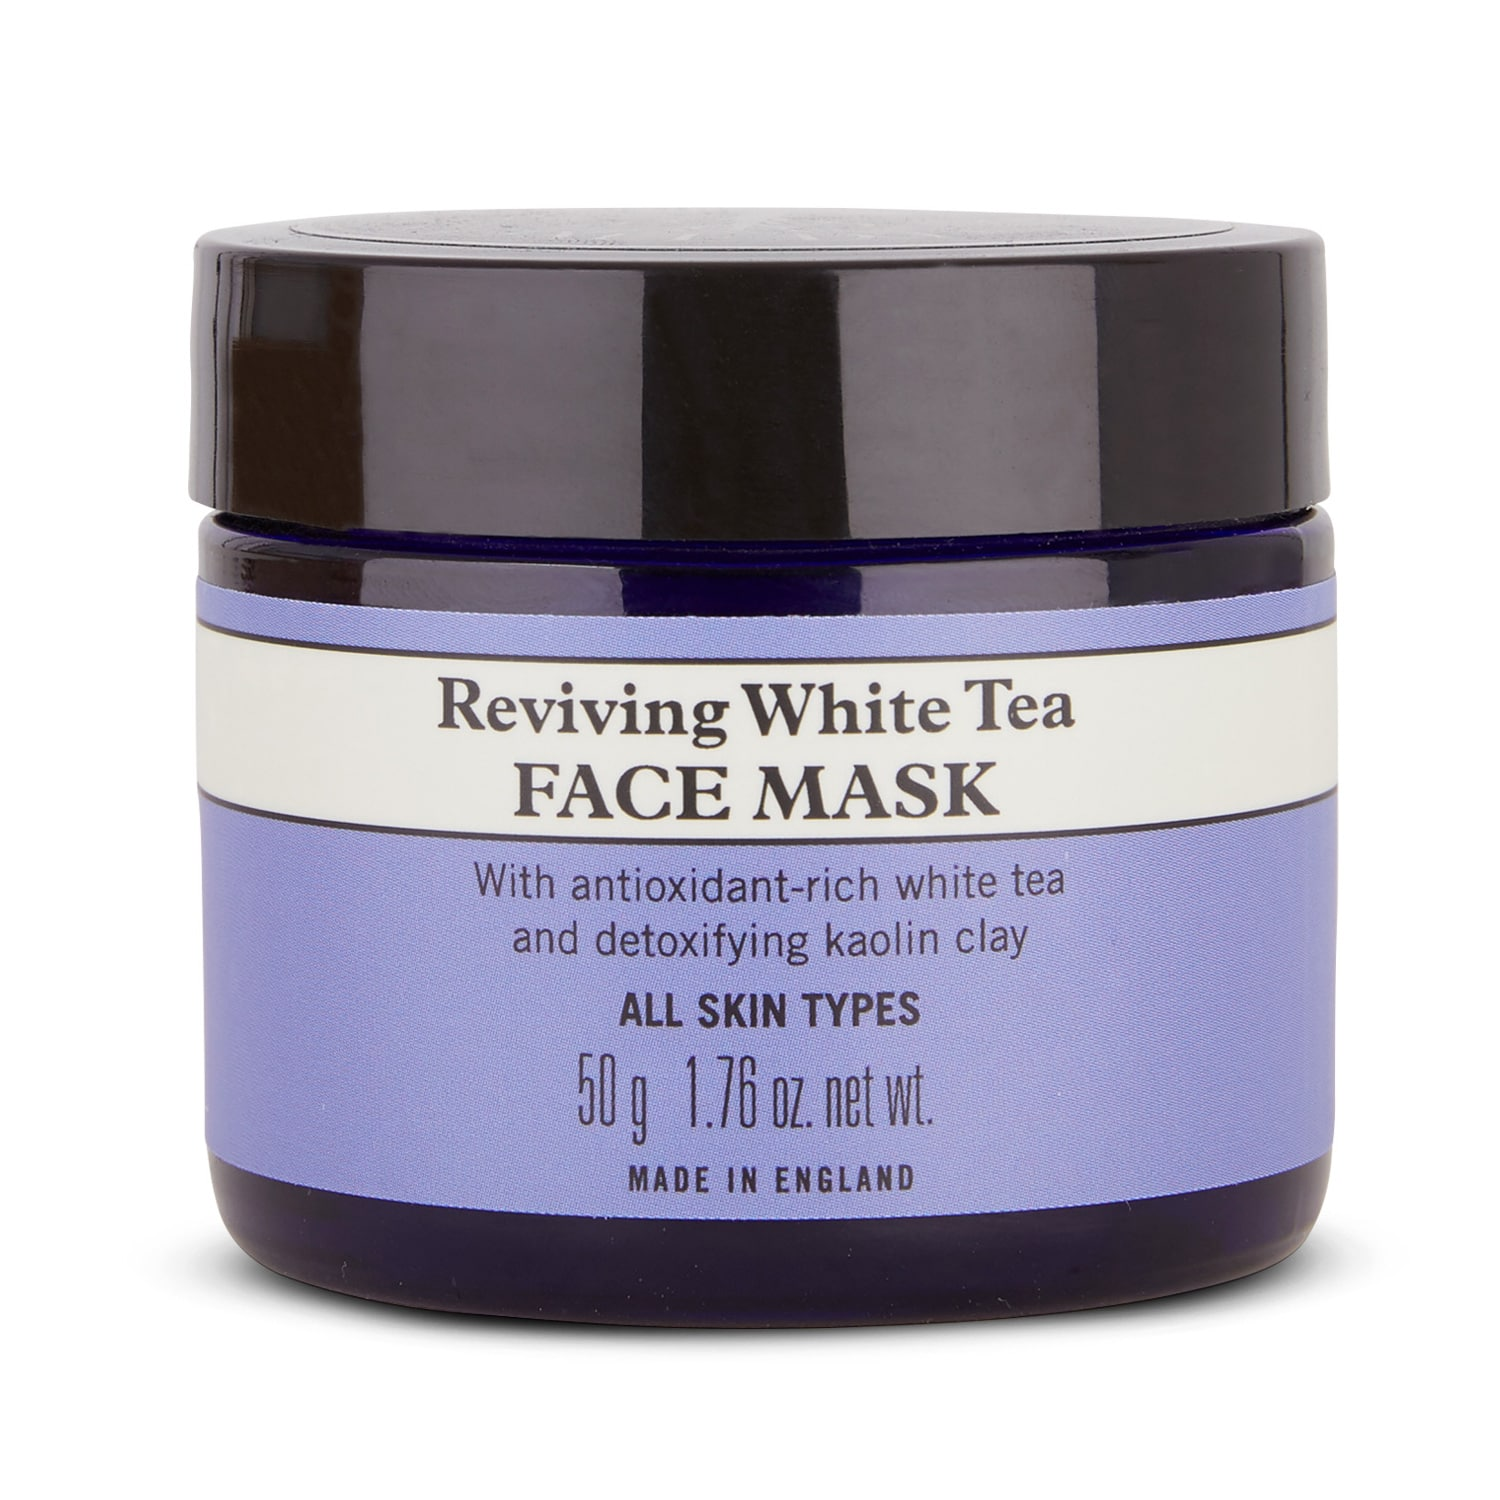 Neal's Yard Remedies Reviving White Tea Face Mask 50g